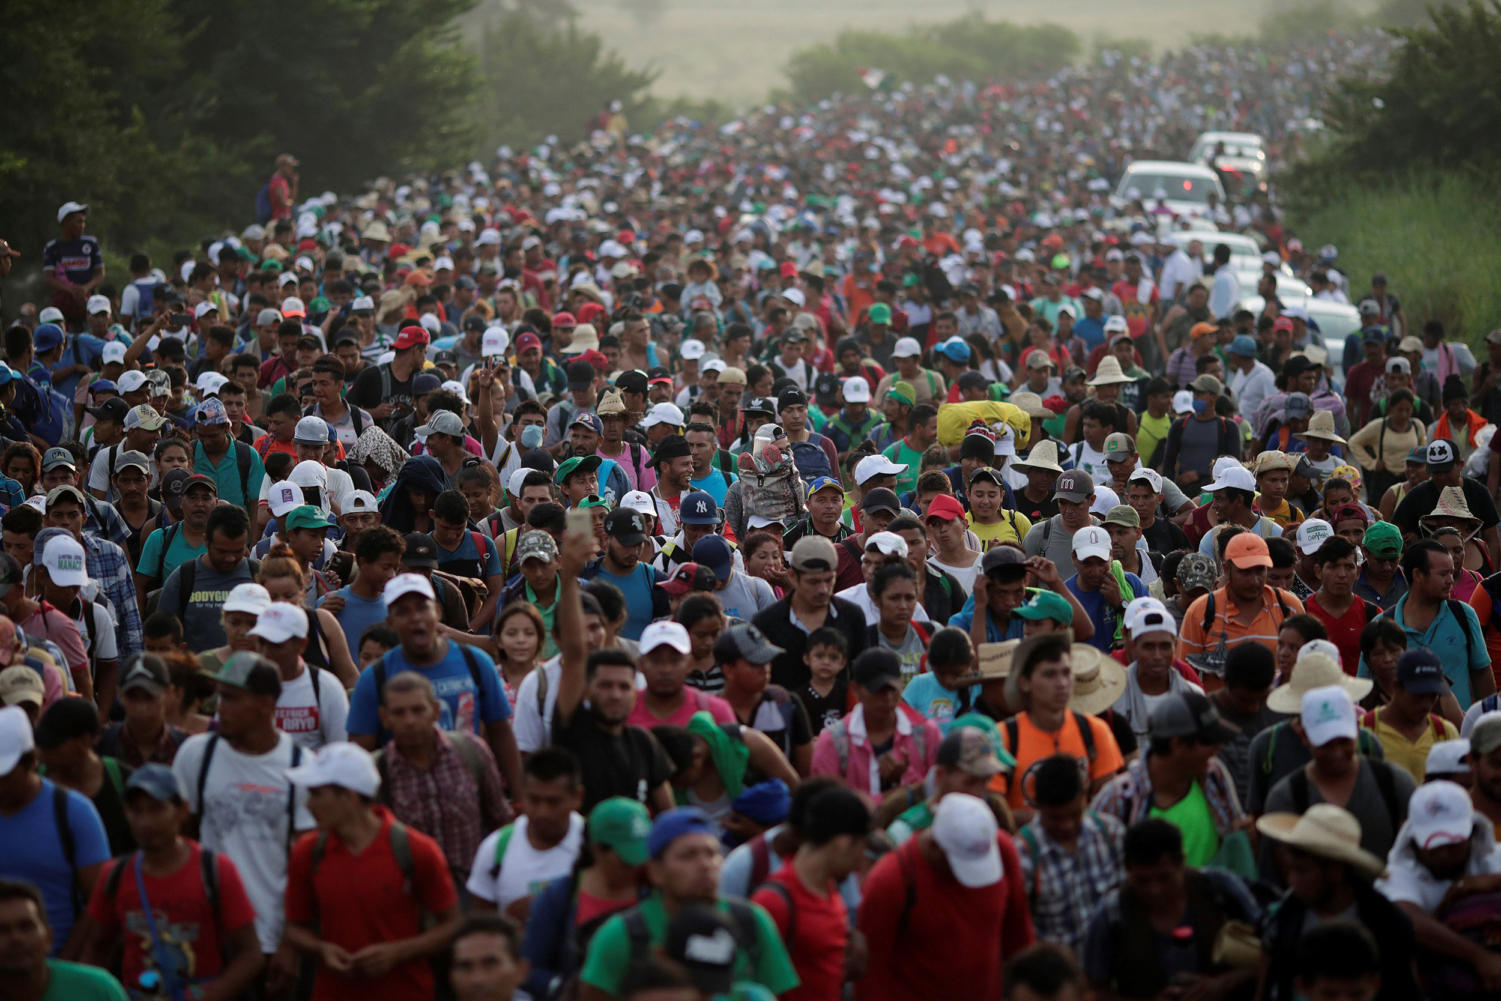 A caravan of thousands of migrants from Central America, en route to the United States, makes its way to San Pedro Tapanatepec from Arriaga, Mexico on Oct. 27, 2018.